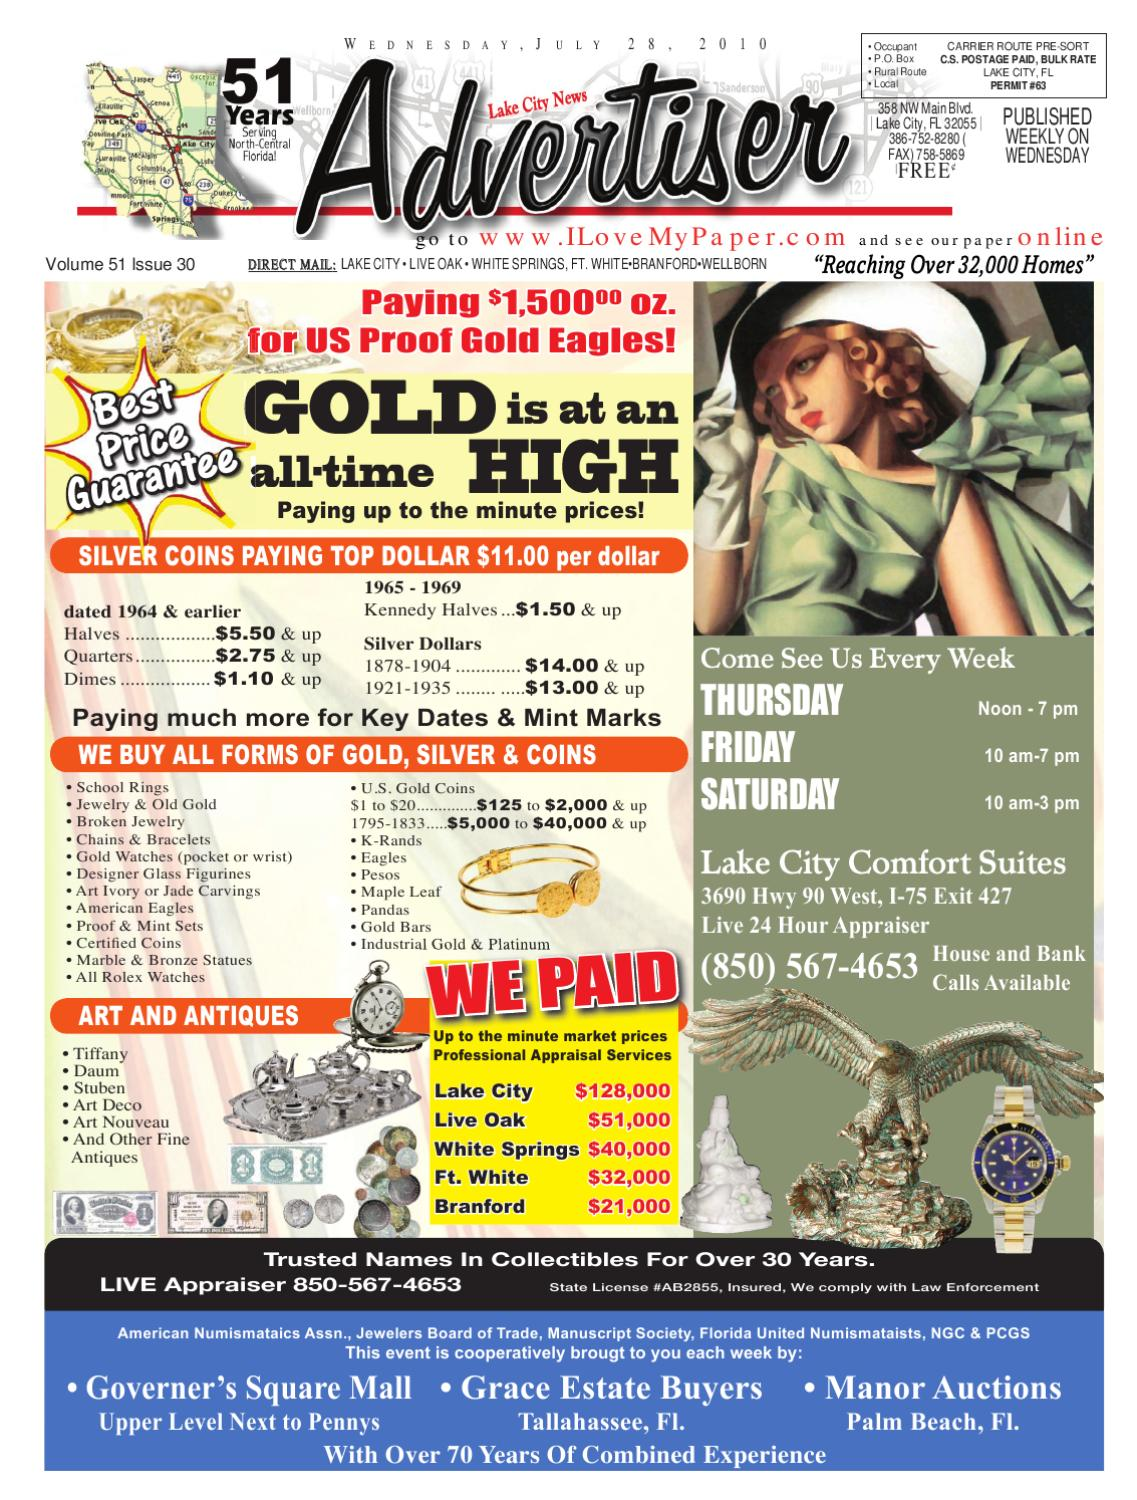 Newspaper Lake City Advertiser Volume 51 Issue 30 by SCBUSA